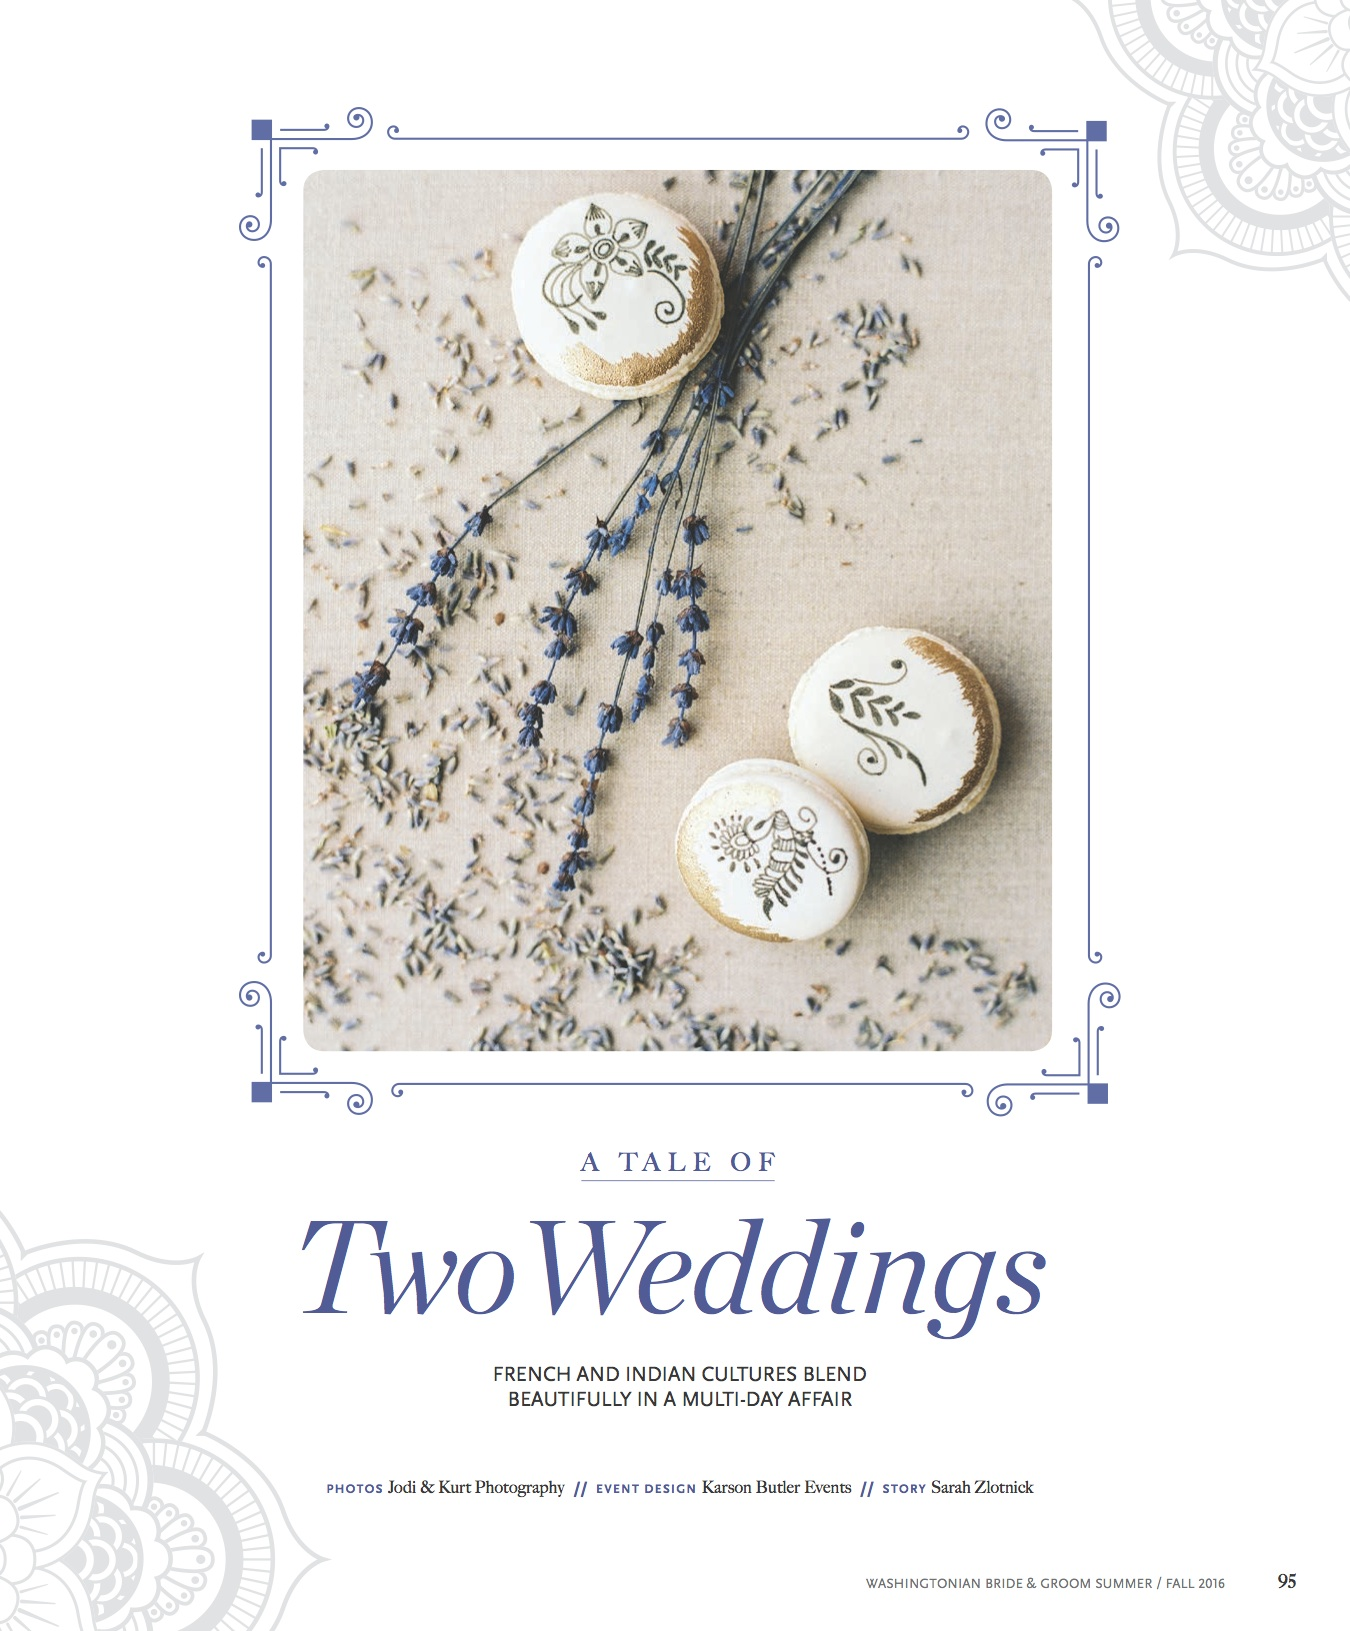 Featured in Washingtonian Bride & Groom: A Tale of Two Weddings